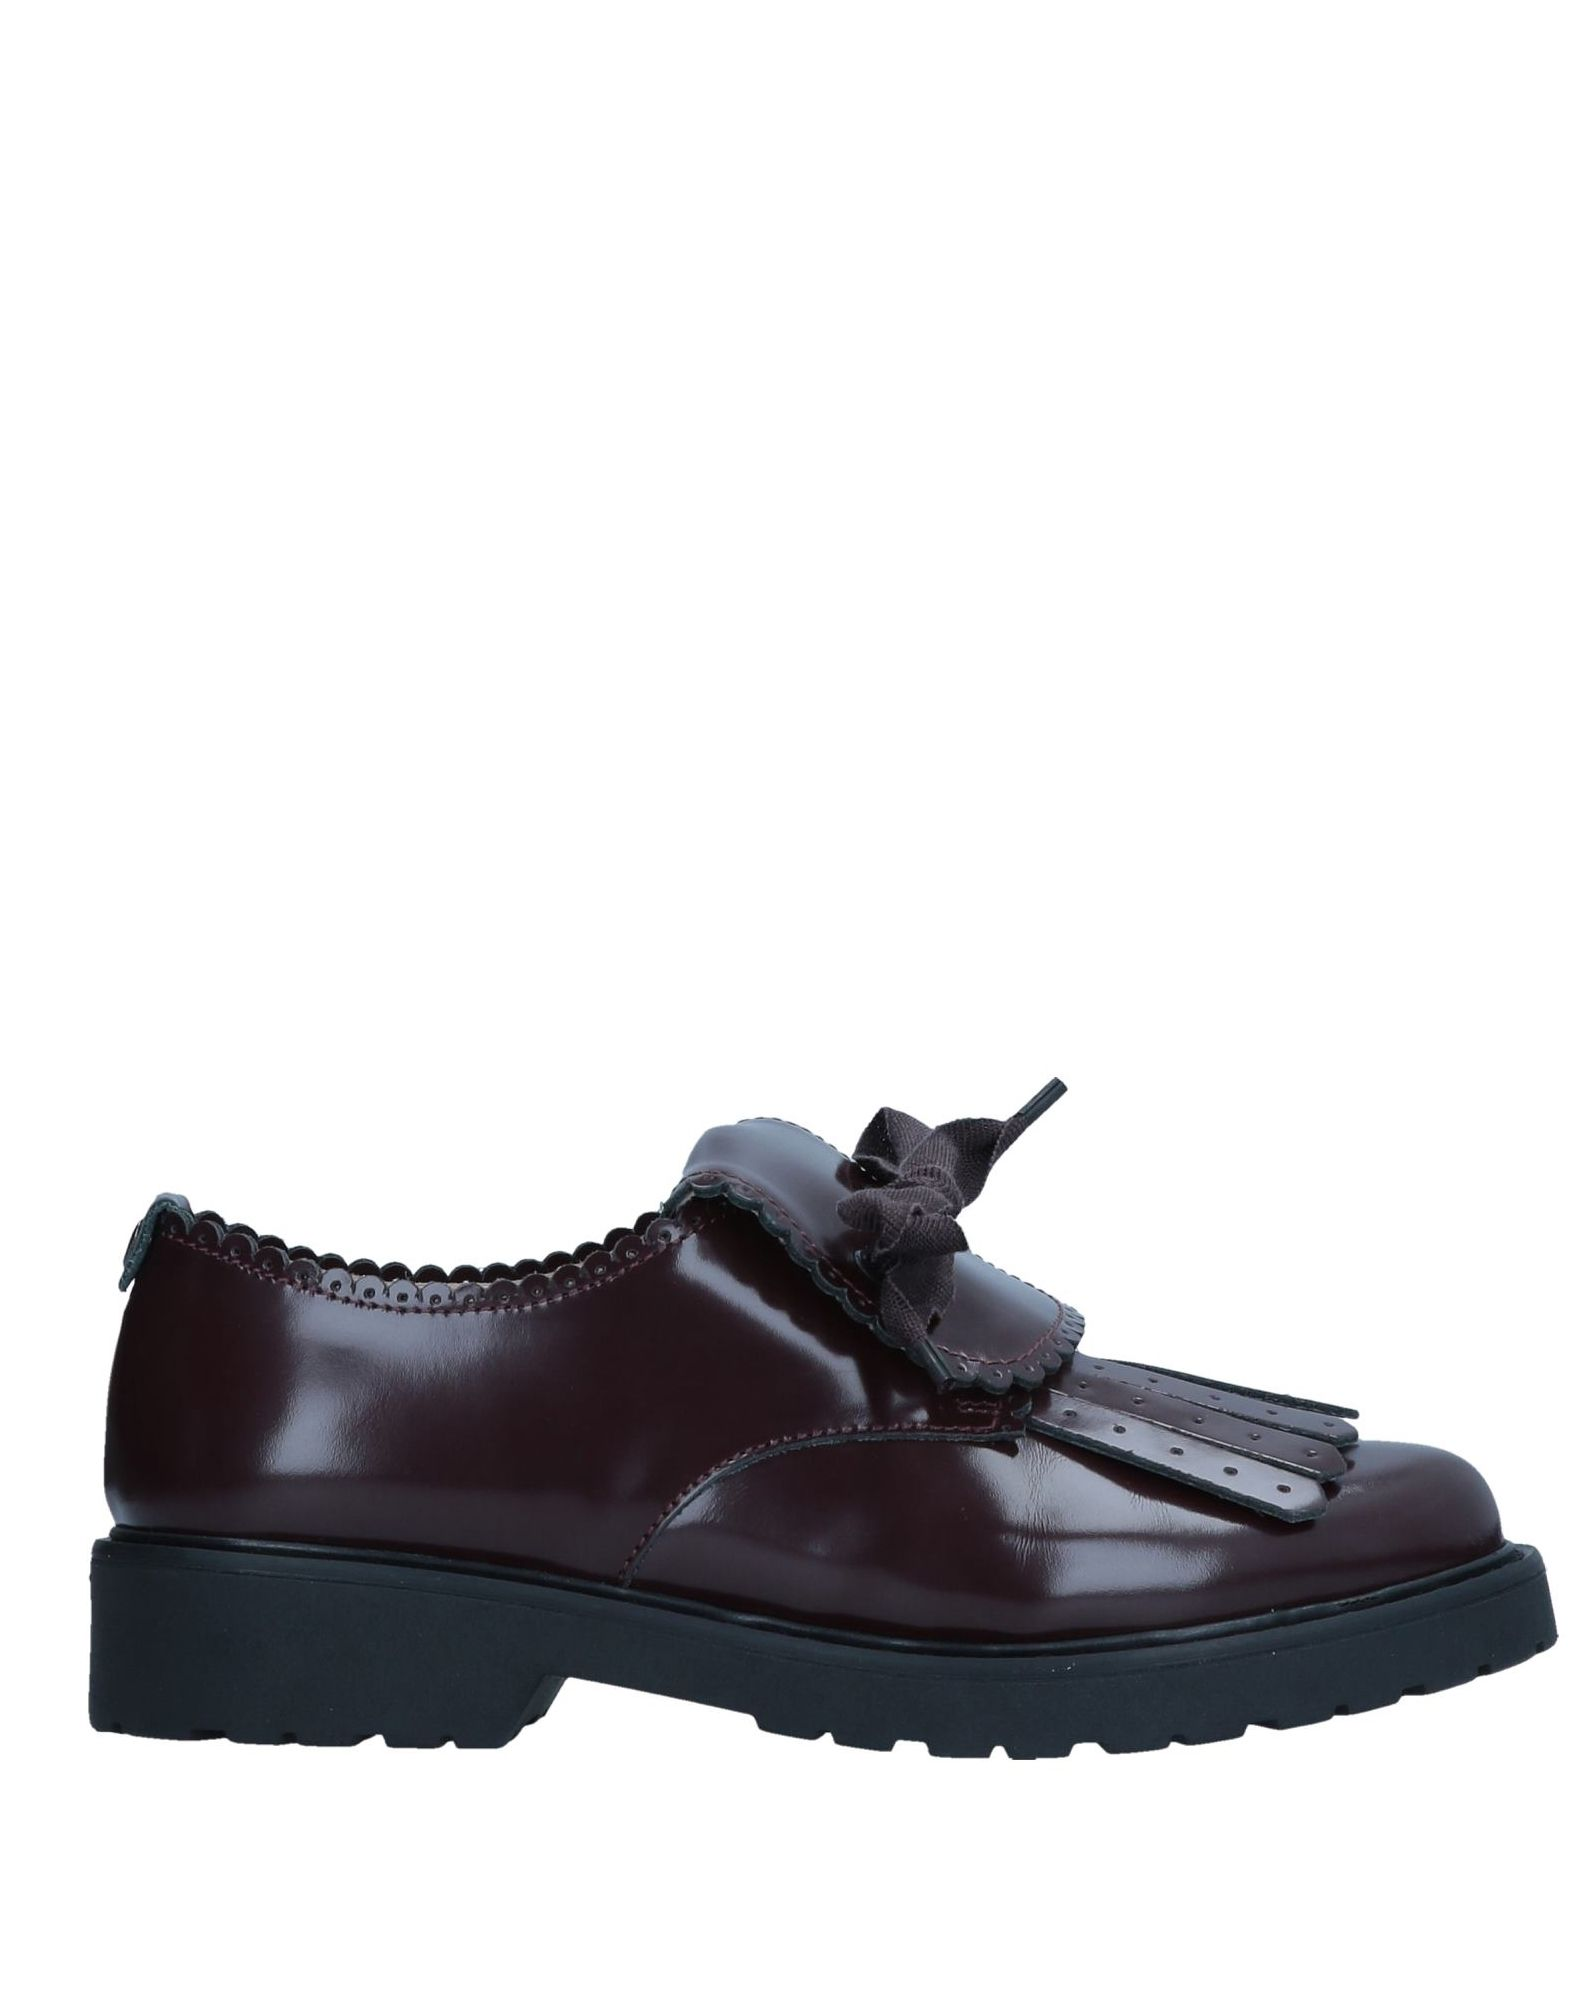 Twin-Set Simona Barbieri Loafers - Women Twin-Set Simona Barbieri Loafers Loafers Loafers online on  United Kingdom - 11066715MR 8db071